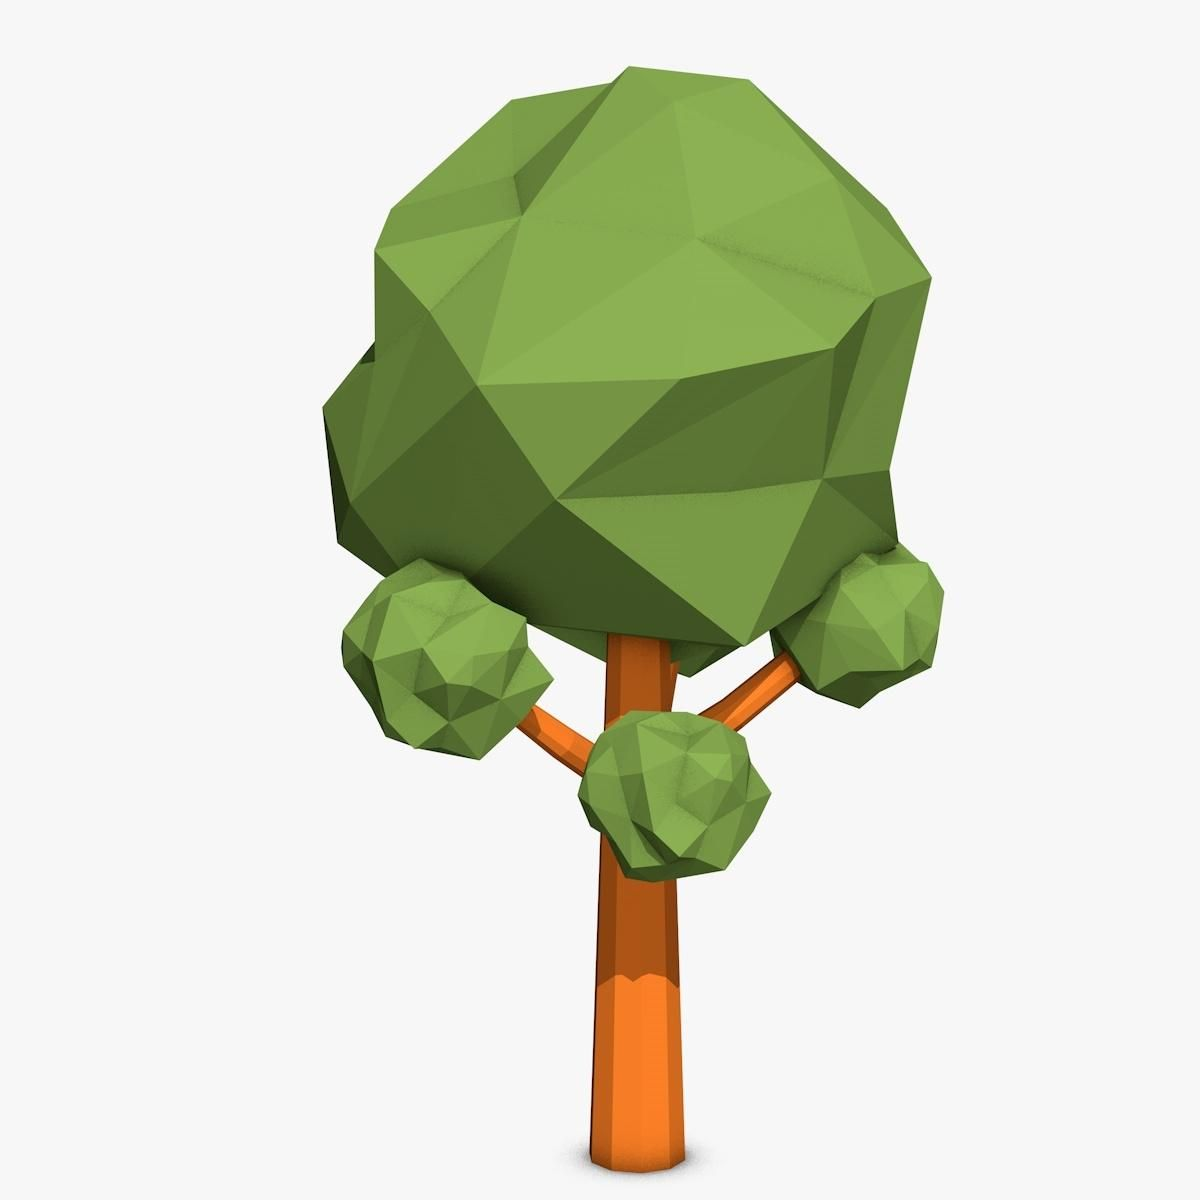 Cartoon Tree Low Poly 3d Model Ad Tree Cartoon Model Poly Cartoon Trees Low Poly 3d Models Low Poly Find this pin and more on trees by michelle darling. pinterest